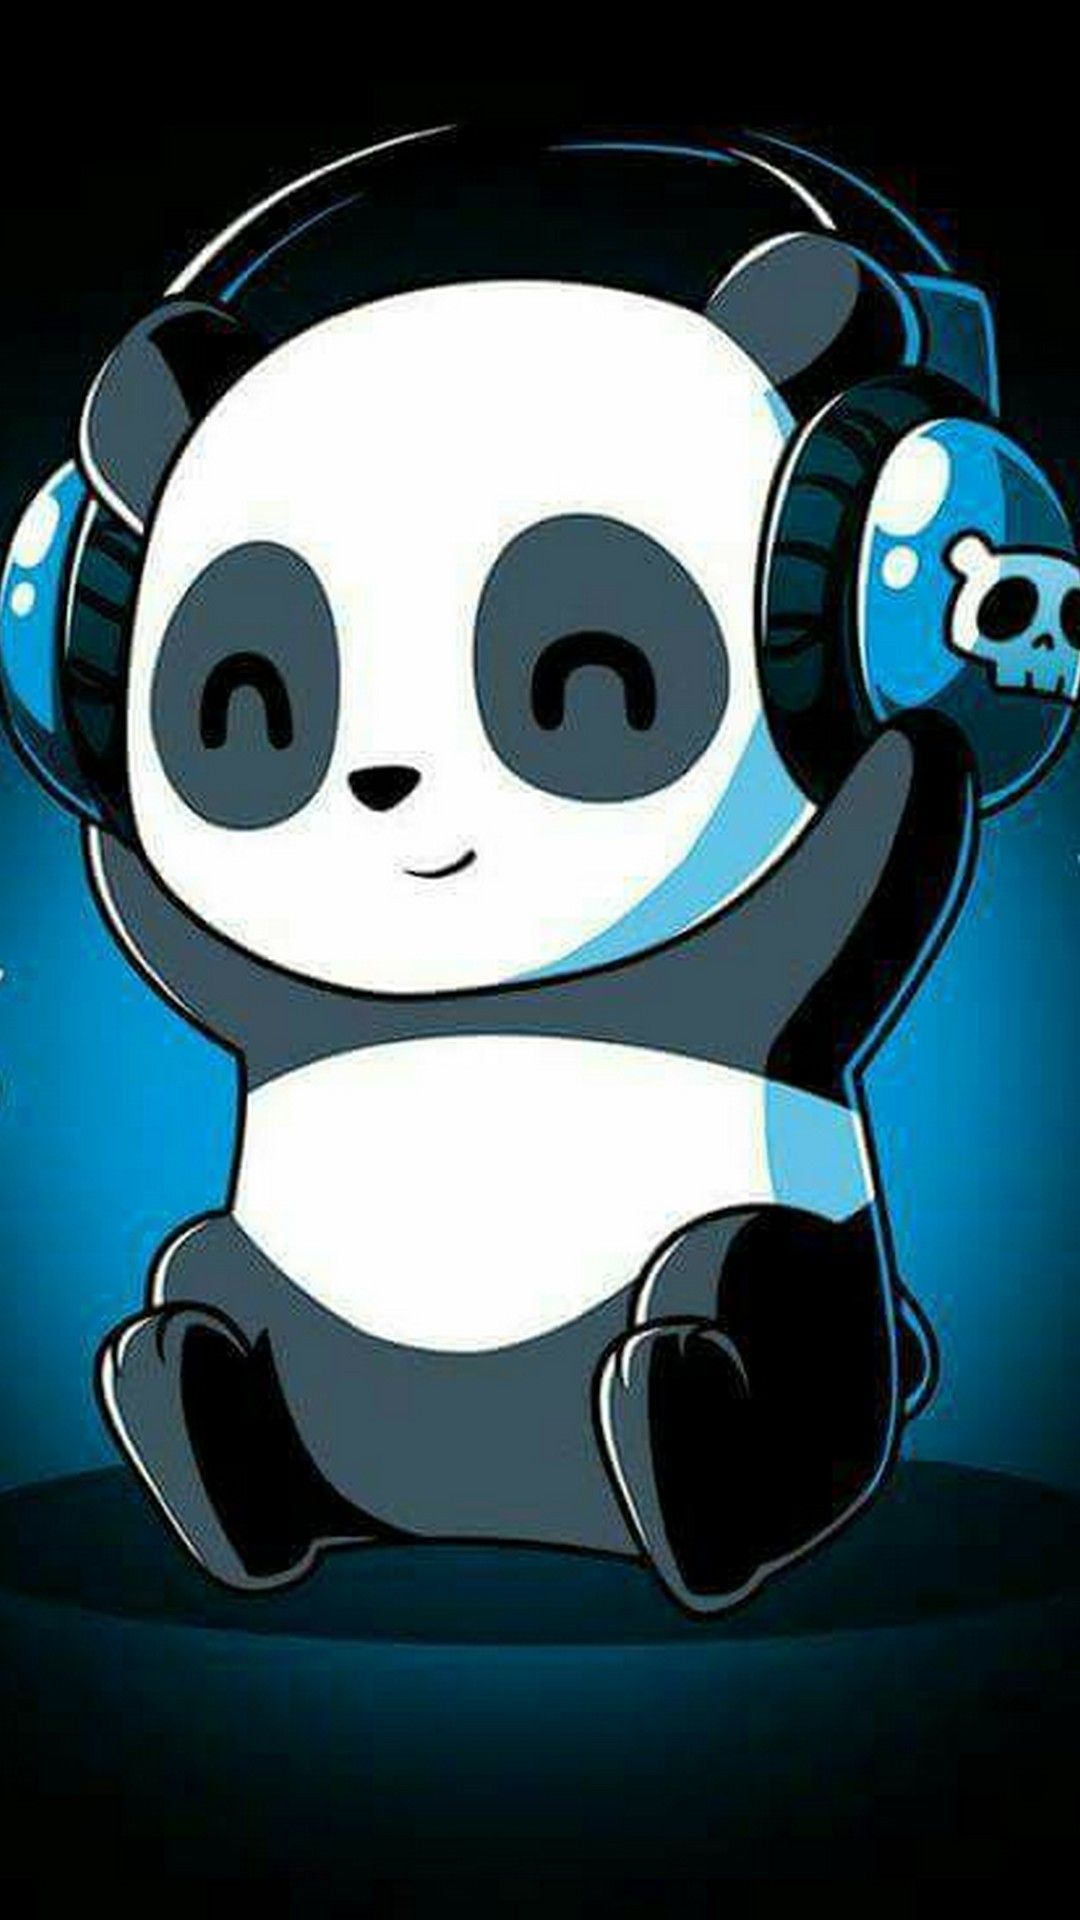 Baby Panda Cellphone Wallpaper Best Hd Wallpapers Cute Panda Cartoon Cute Panda Wallpaper Cute Cartoon Wallpapers